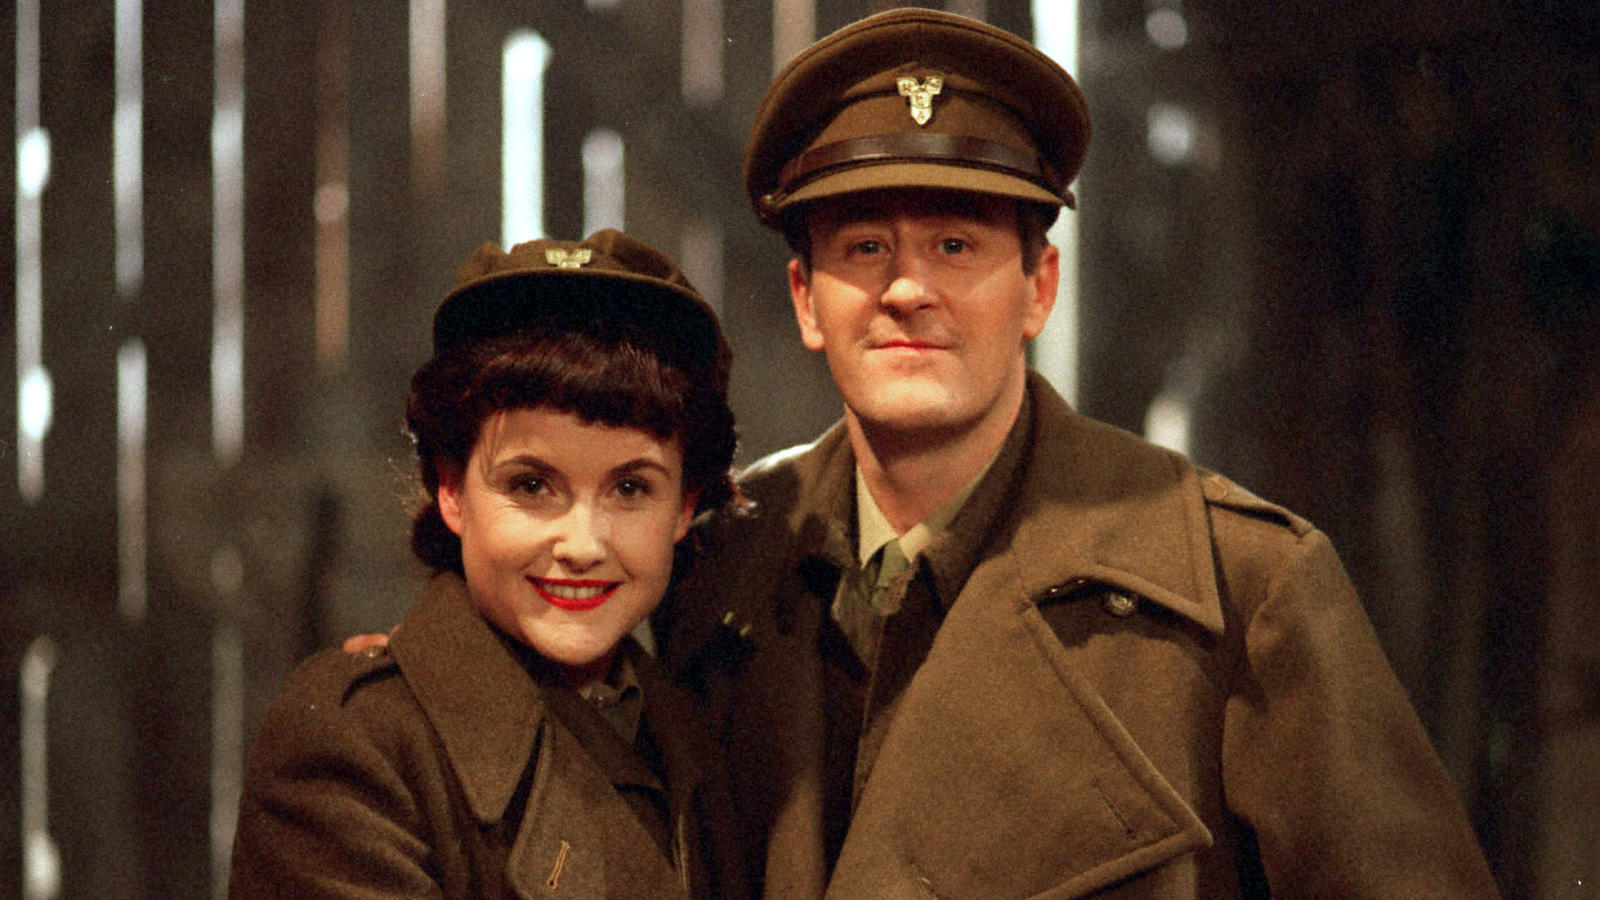 Nicholas Lyndhurst returns in Goodnight Sweetheart